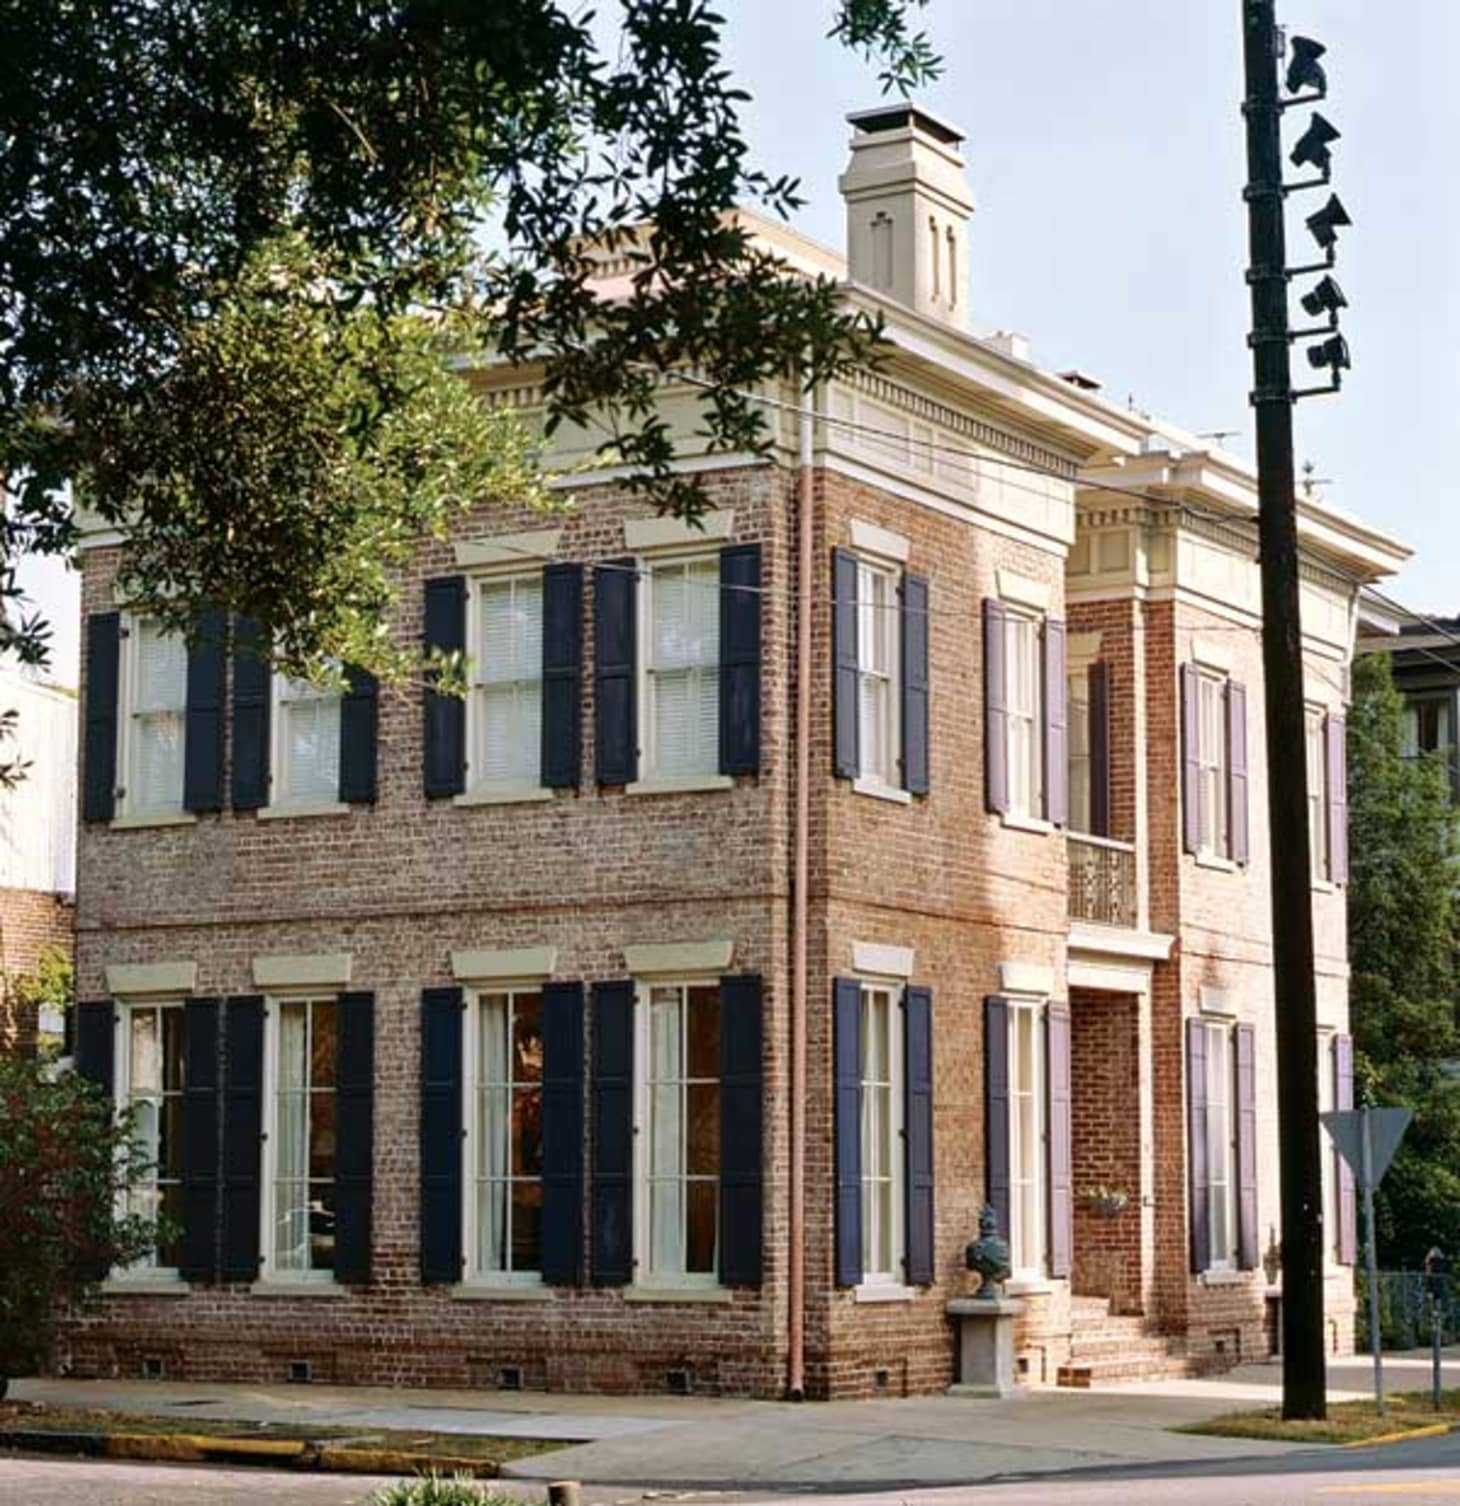 5 Of The Most Swoon-Worthy Homes In Savannah, Georgia